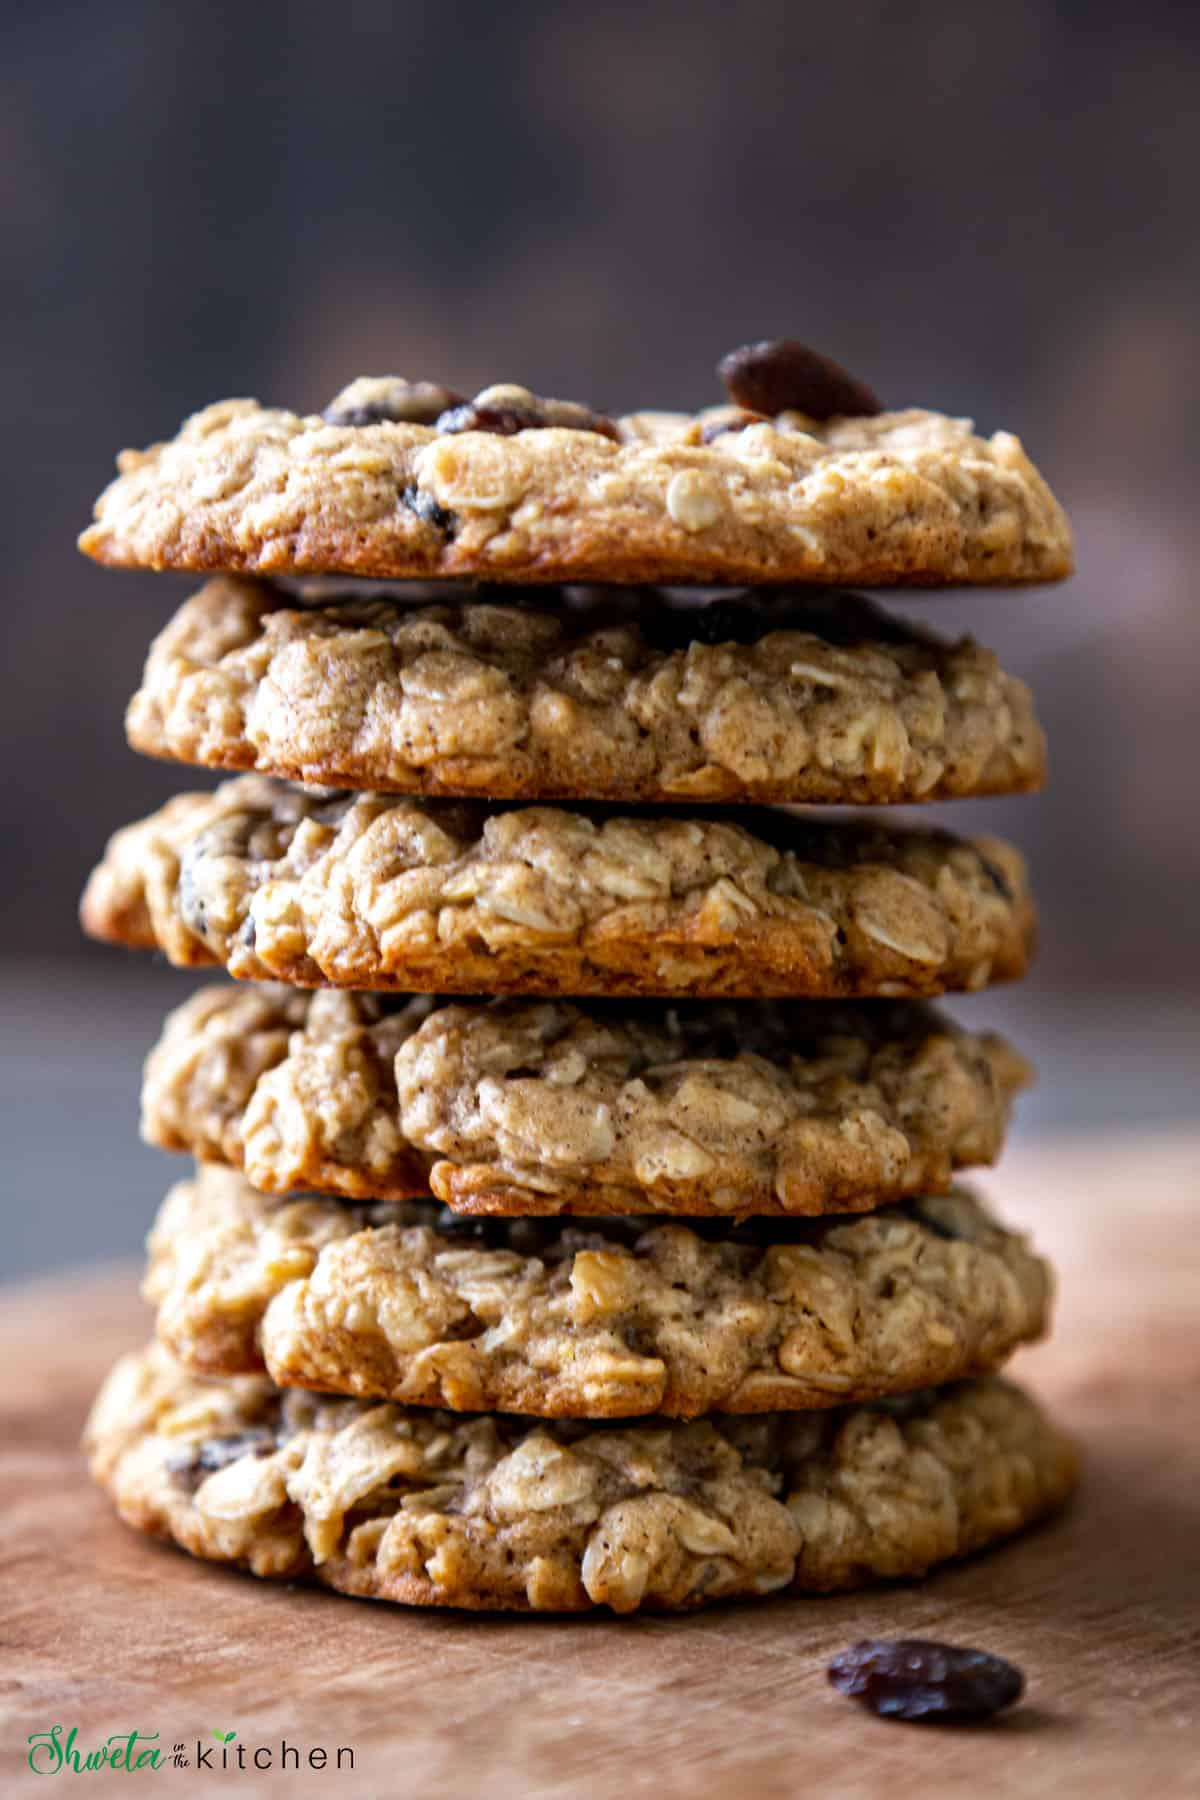 side view of stack of 6 cookies